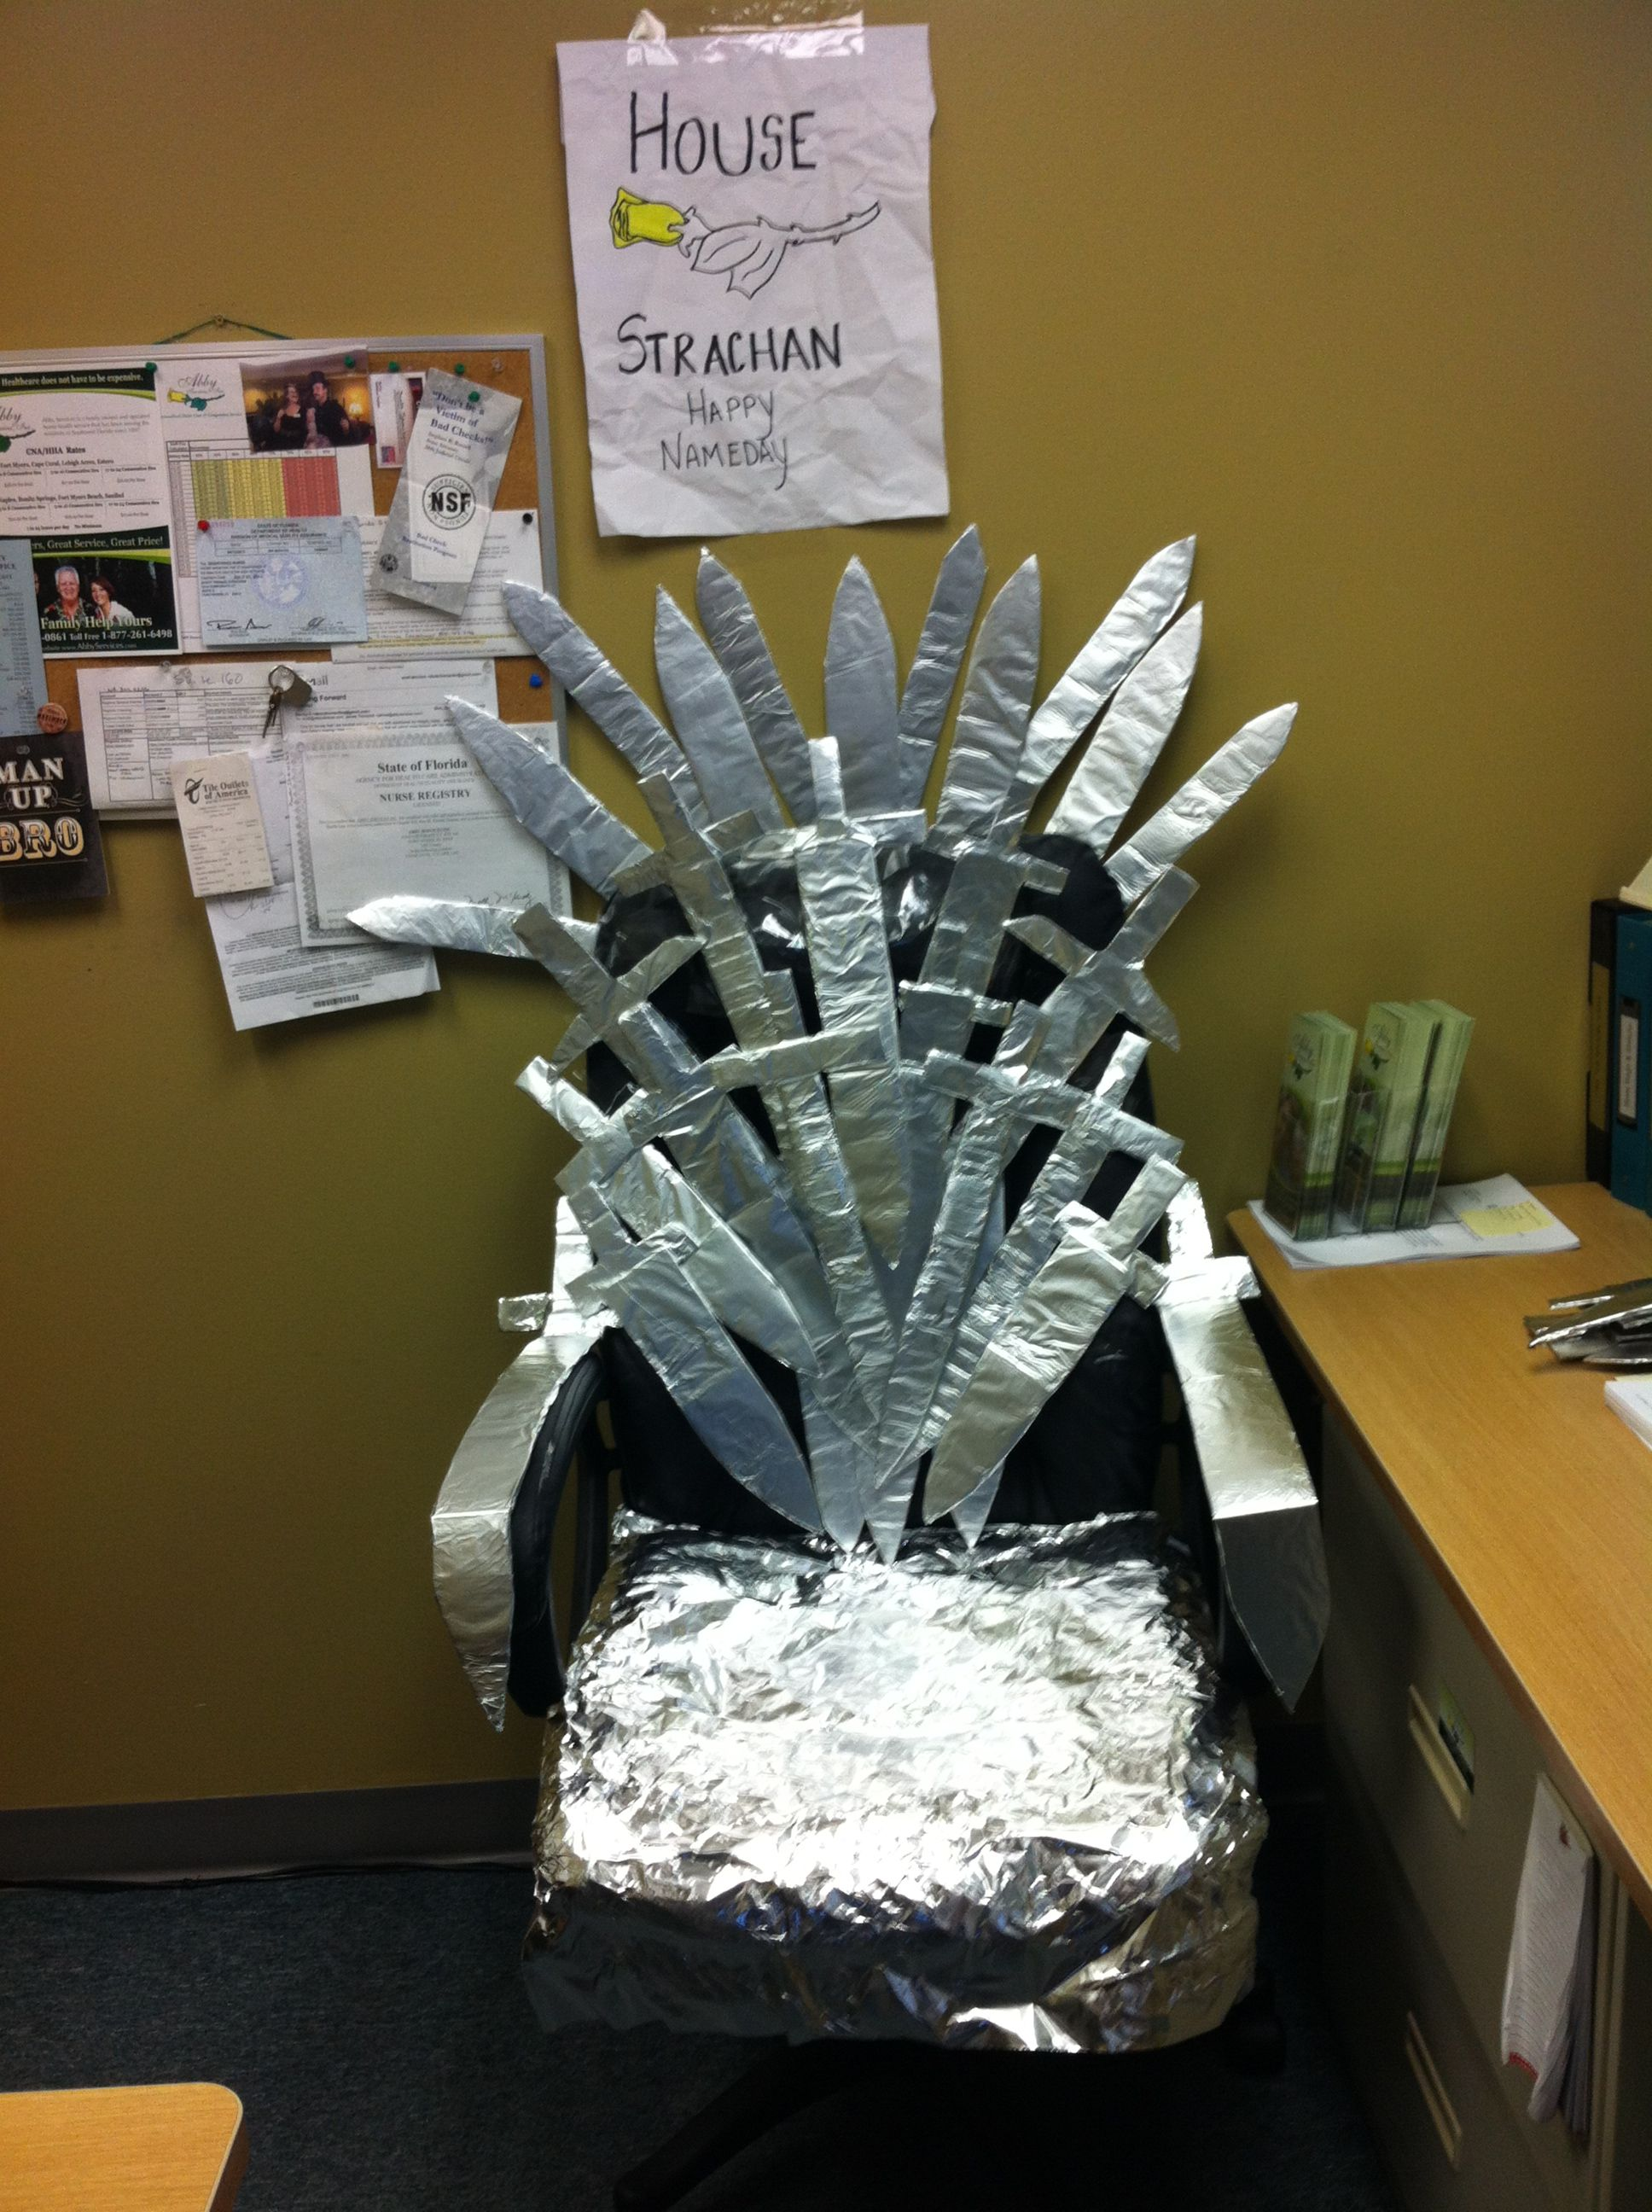 Game of thrones nameday office chair grown up parties for Buy iron throne chair